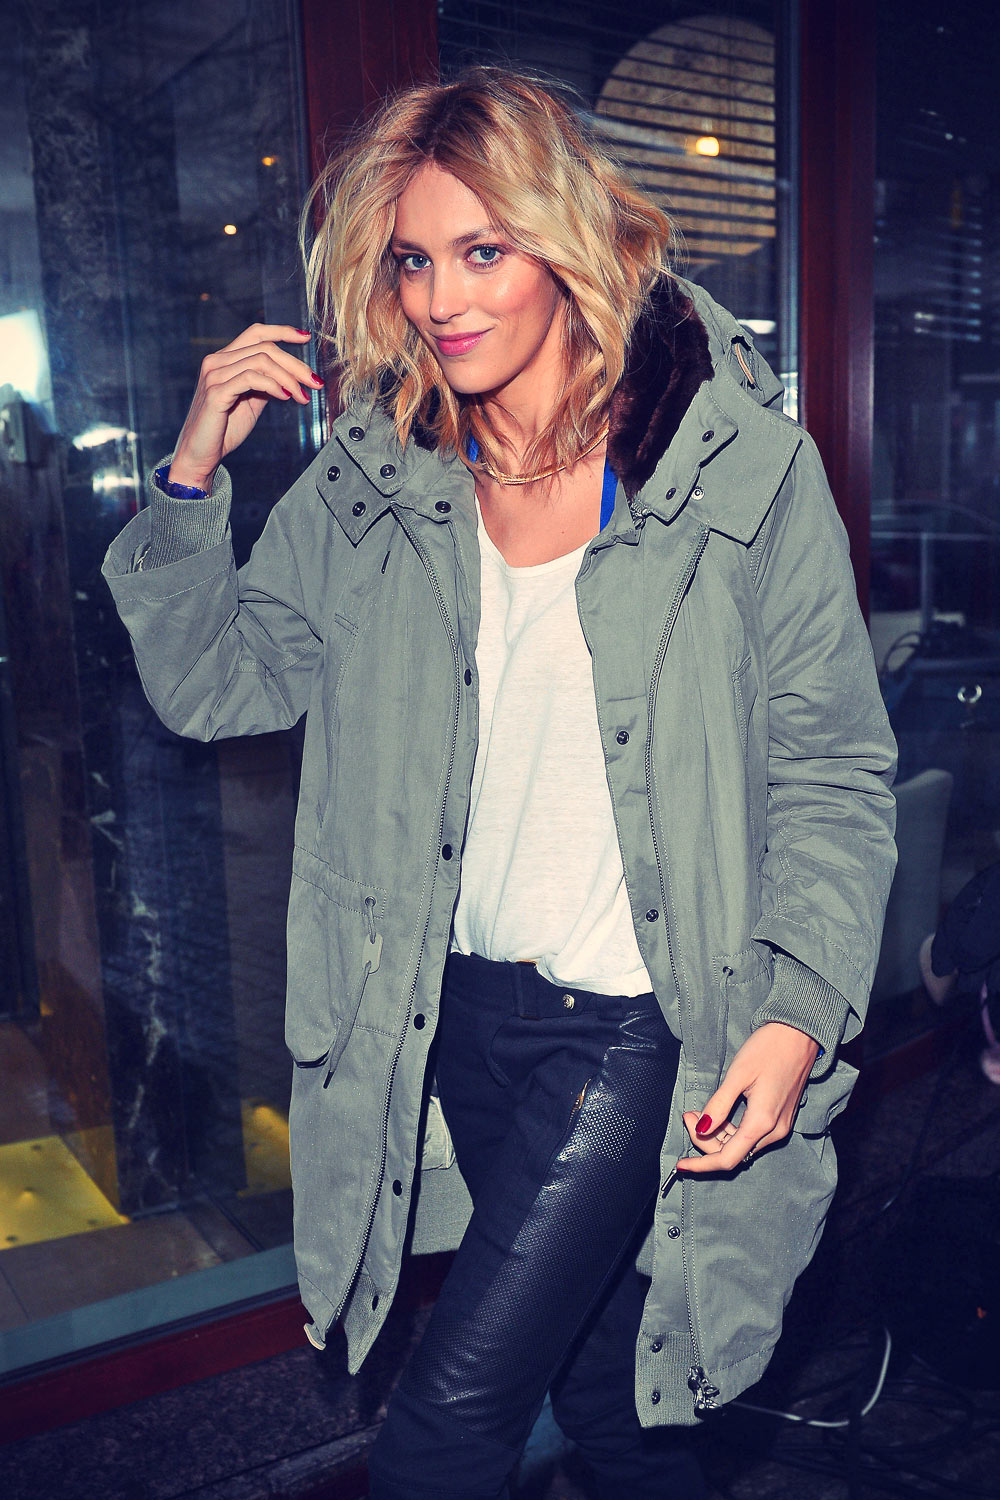 Anja Rubik At TV show Good Morning TVN